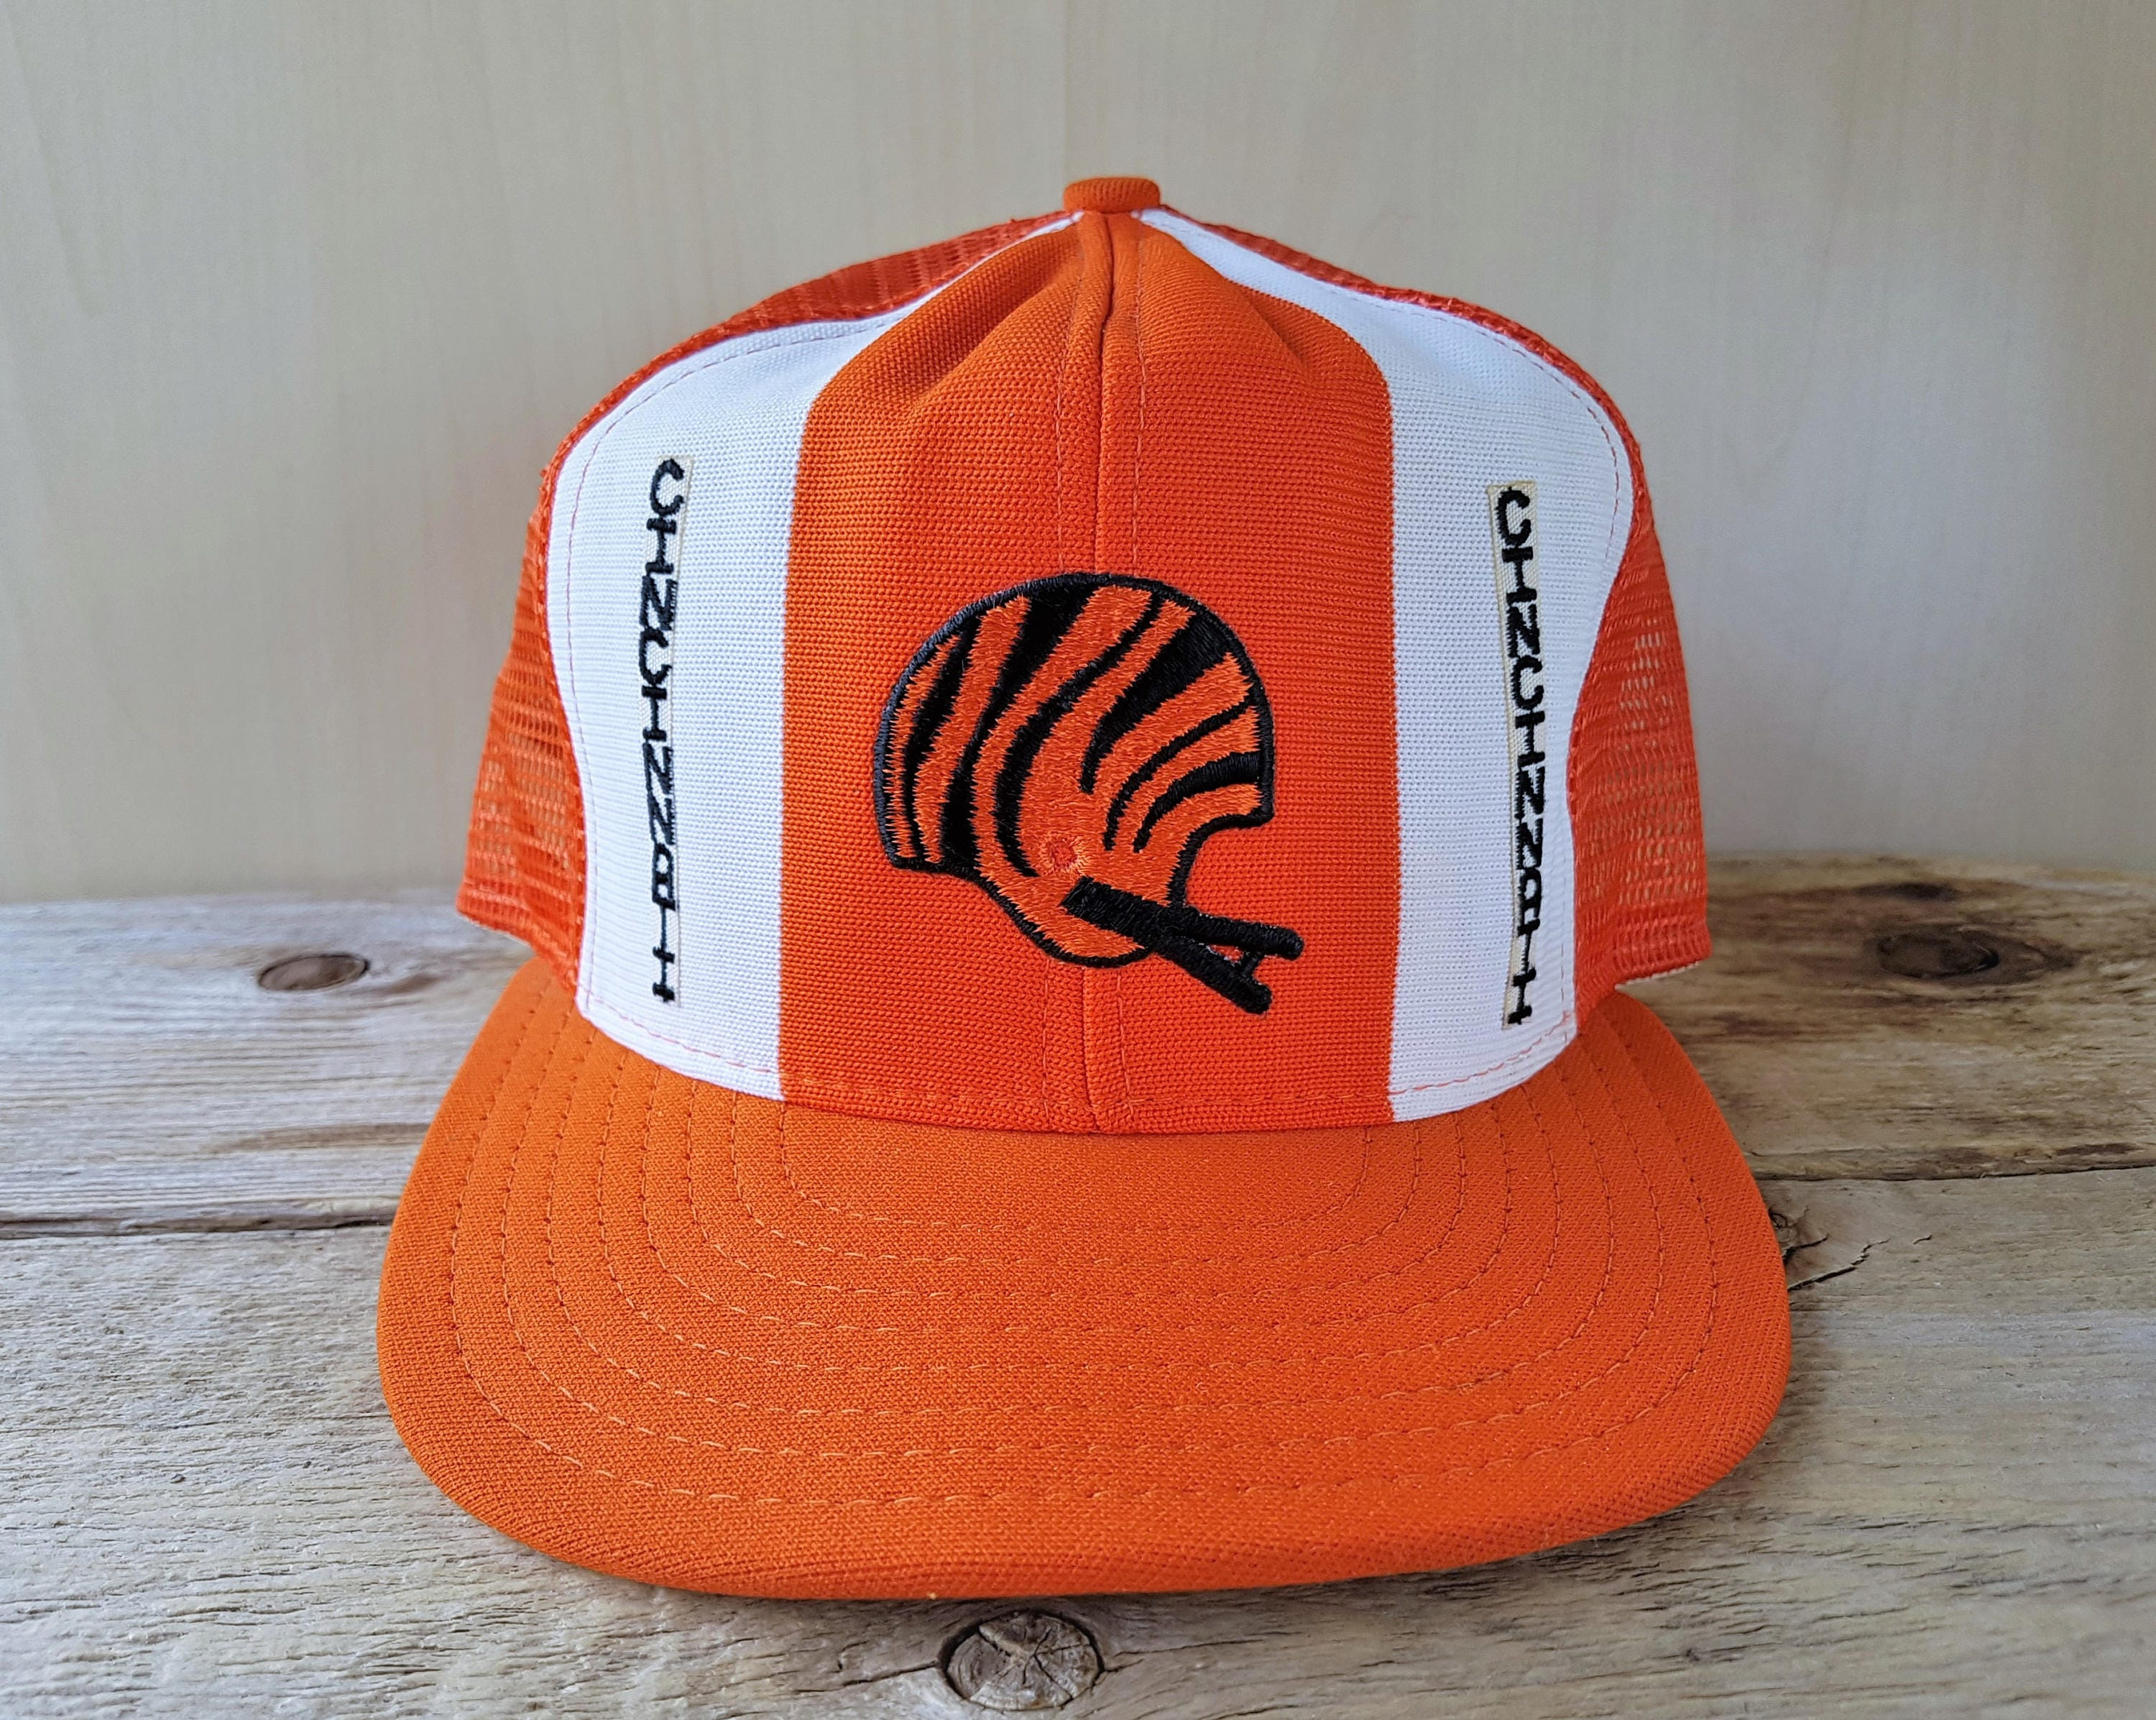 ffcf4b5ff2d Cincinnati BENGALS Football Team Vintage 80s Lucky Stripes Official  Licensed AJD Large Snapback Hat Orange Mesh